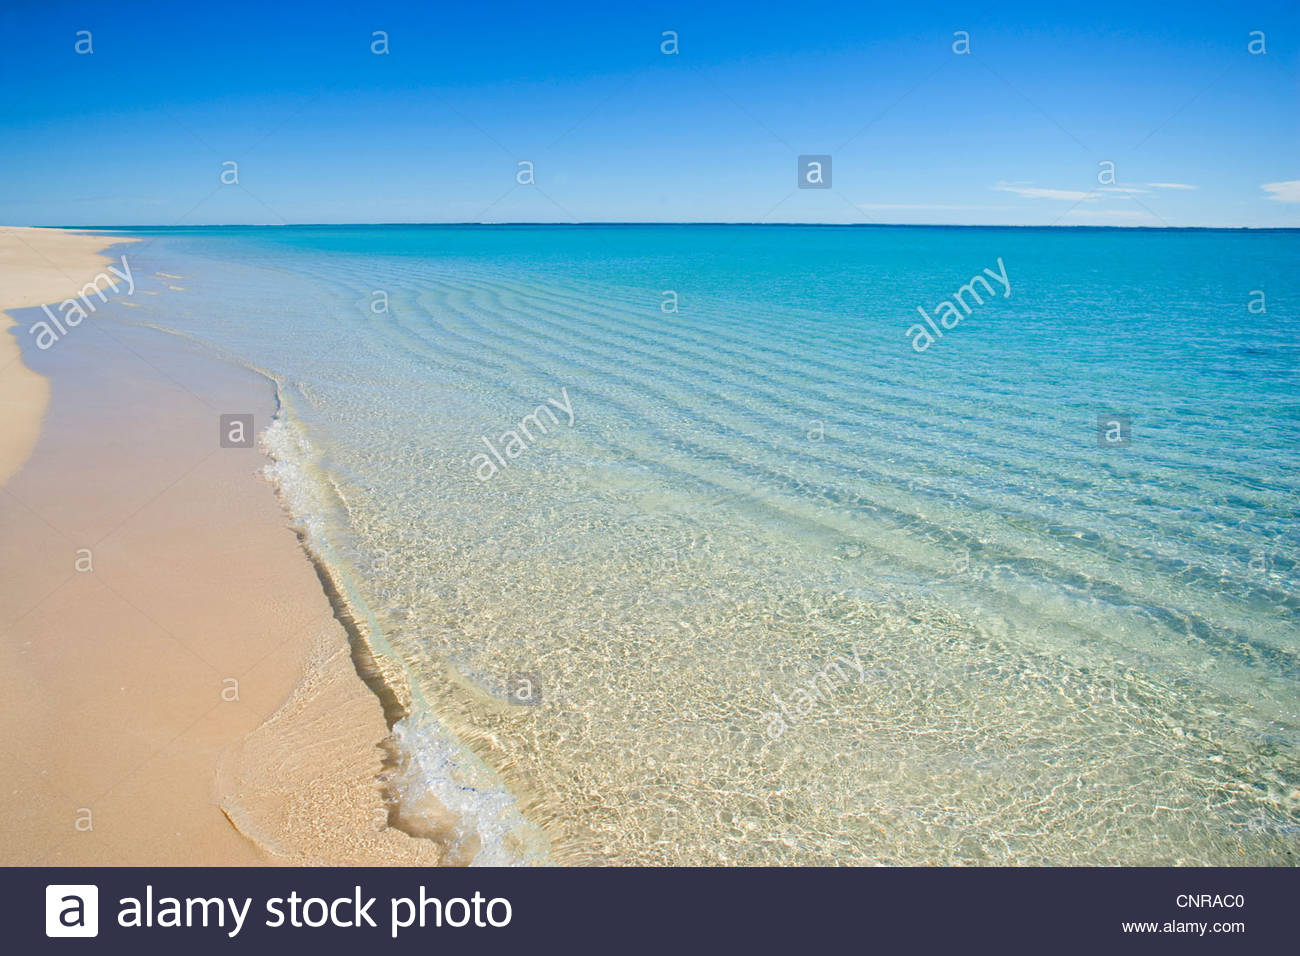 white sandy beach, clear turquoise coloured water and a deep blue sky combine to a perfect beach, Australia, Western - Stock Image